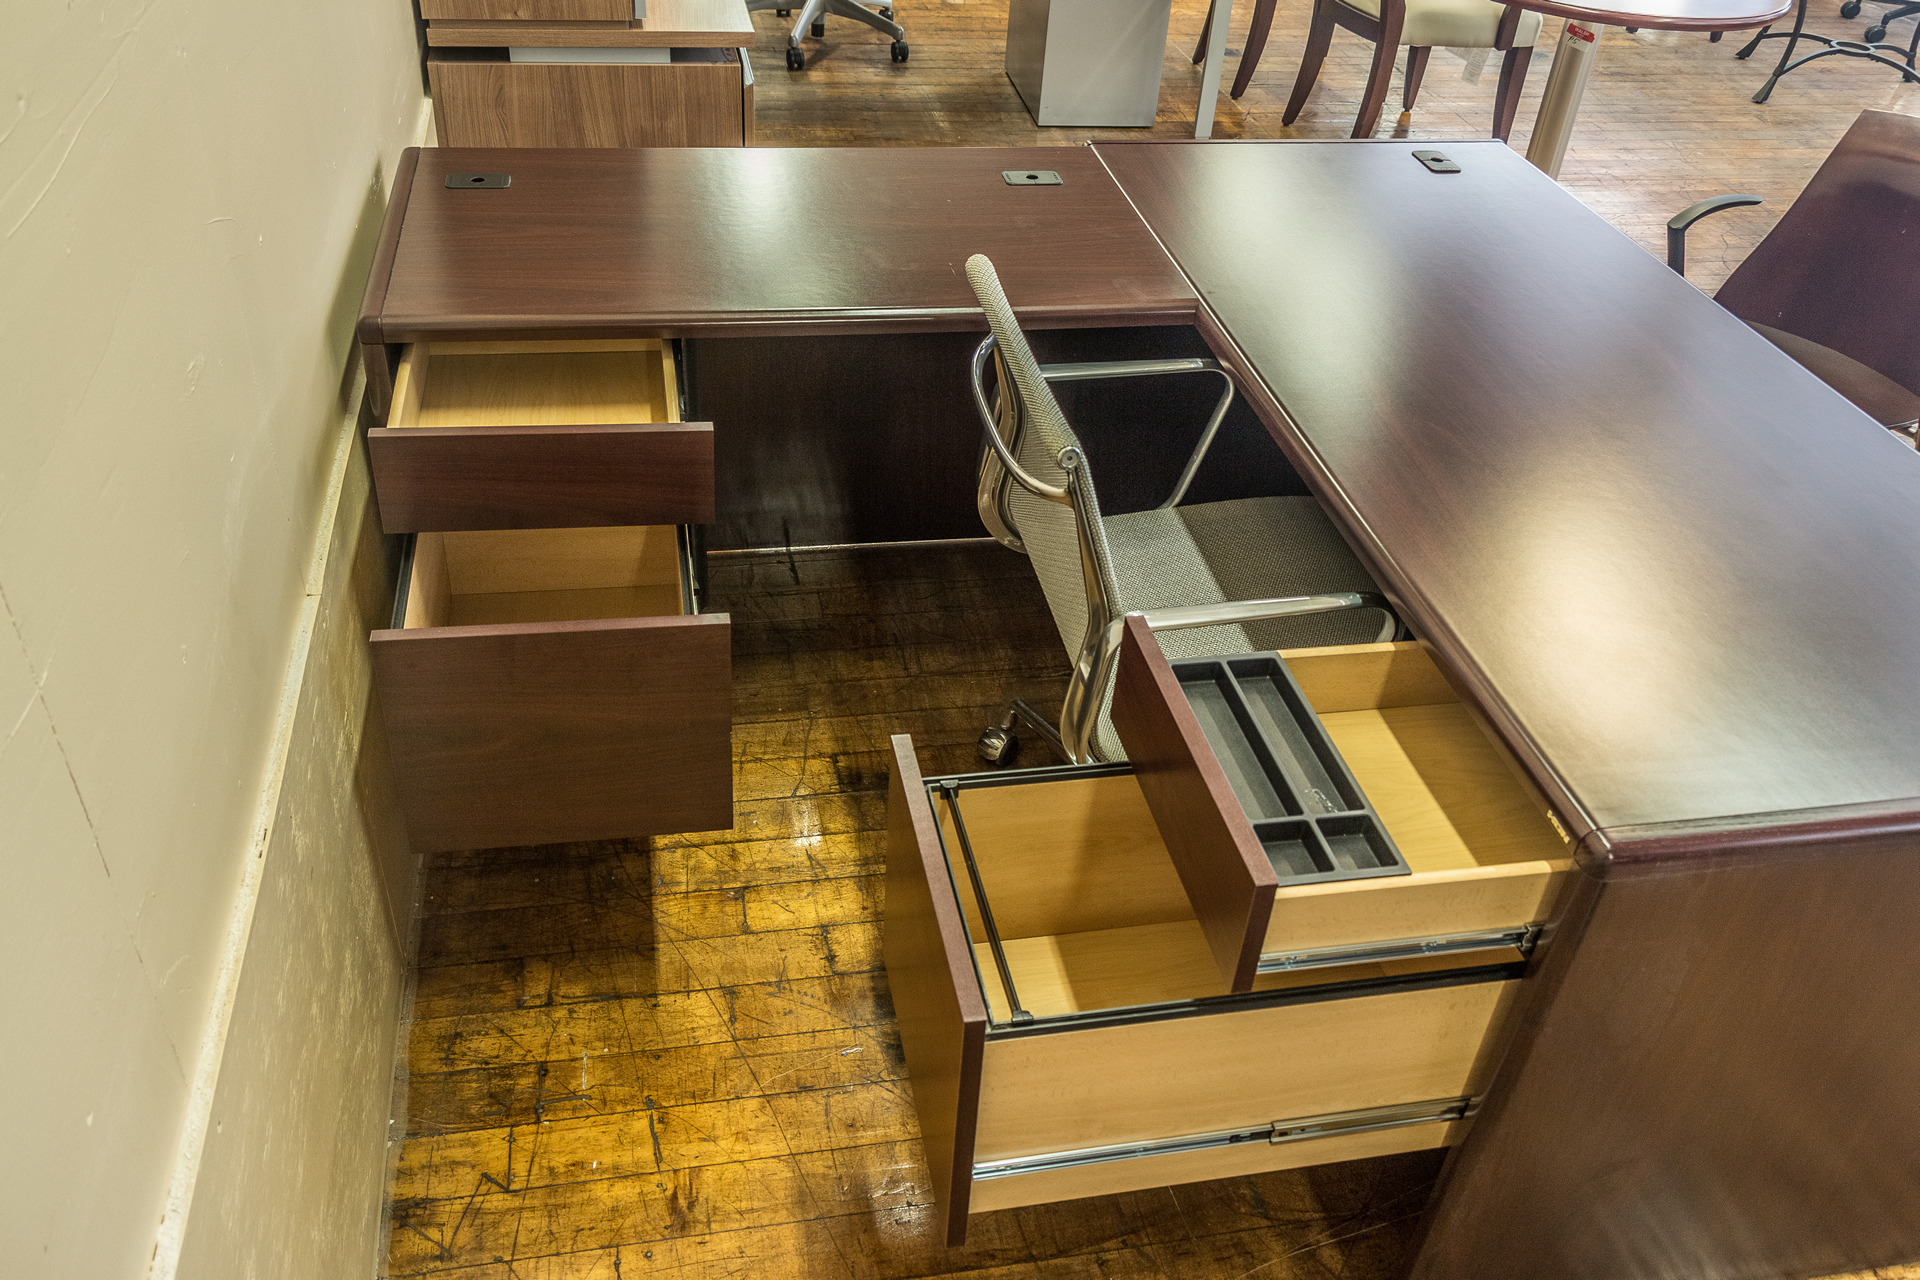 peartreeofficefurniture_peartreeofficefurniture_peartreeofficefurniture_hon-cherry-laminate-l-desks-1.jpg